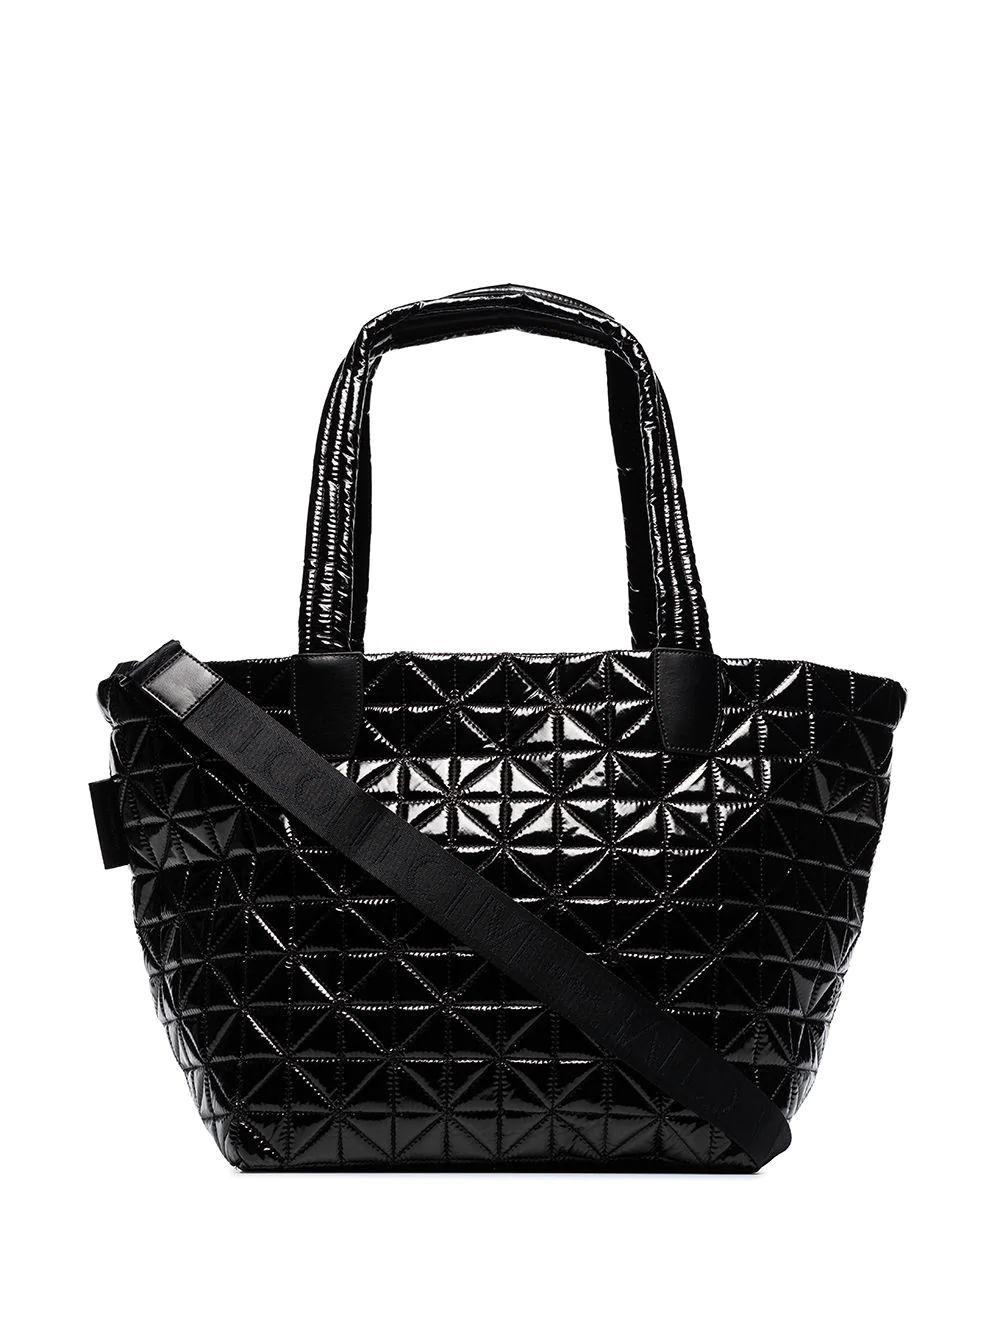 Medium Vee Tote Item # 101-202-321